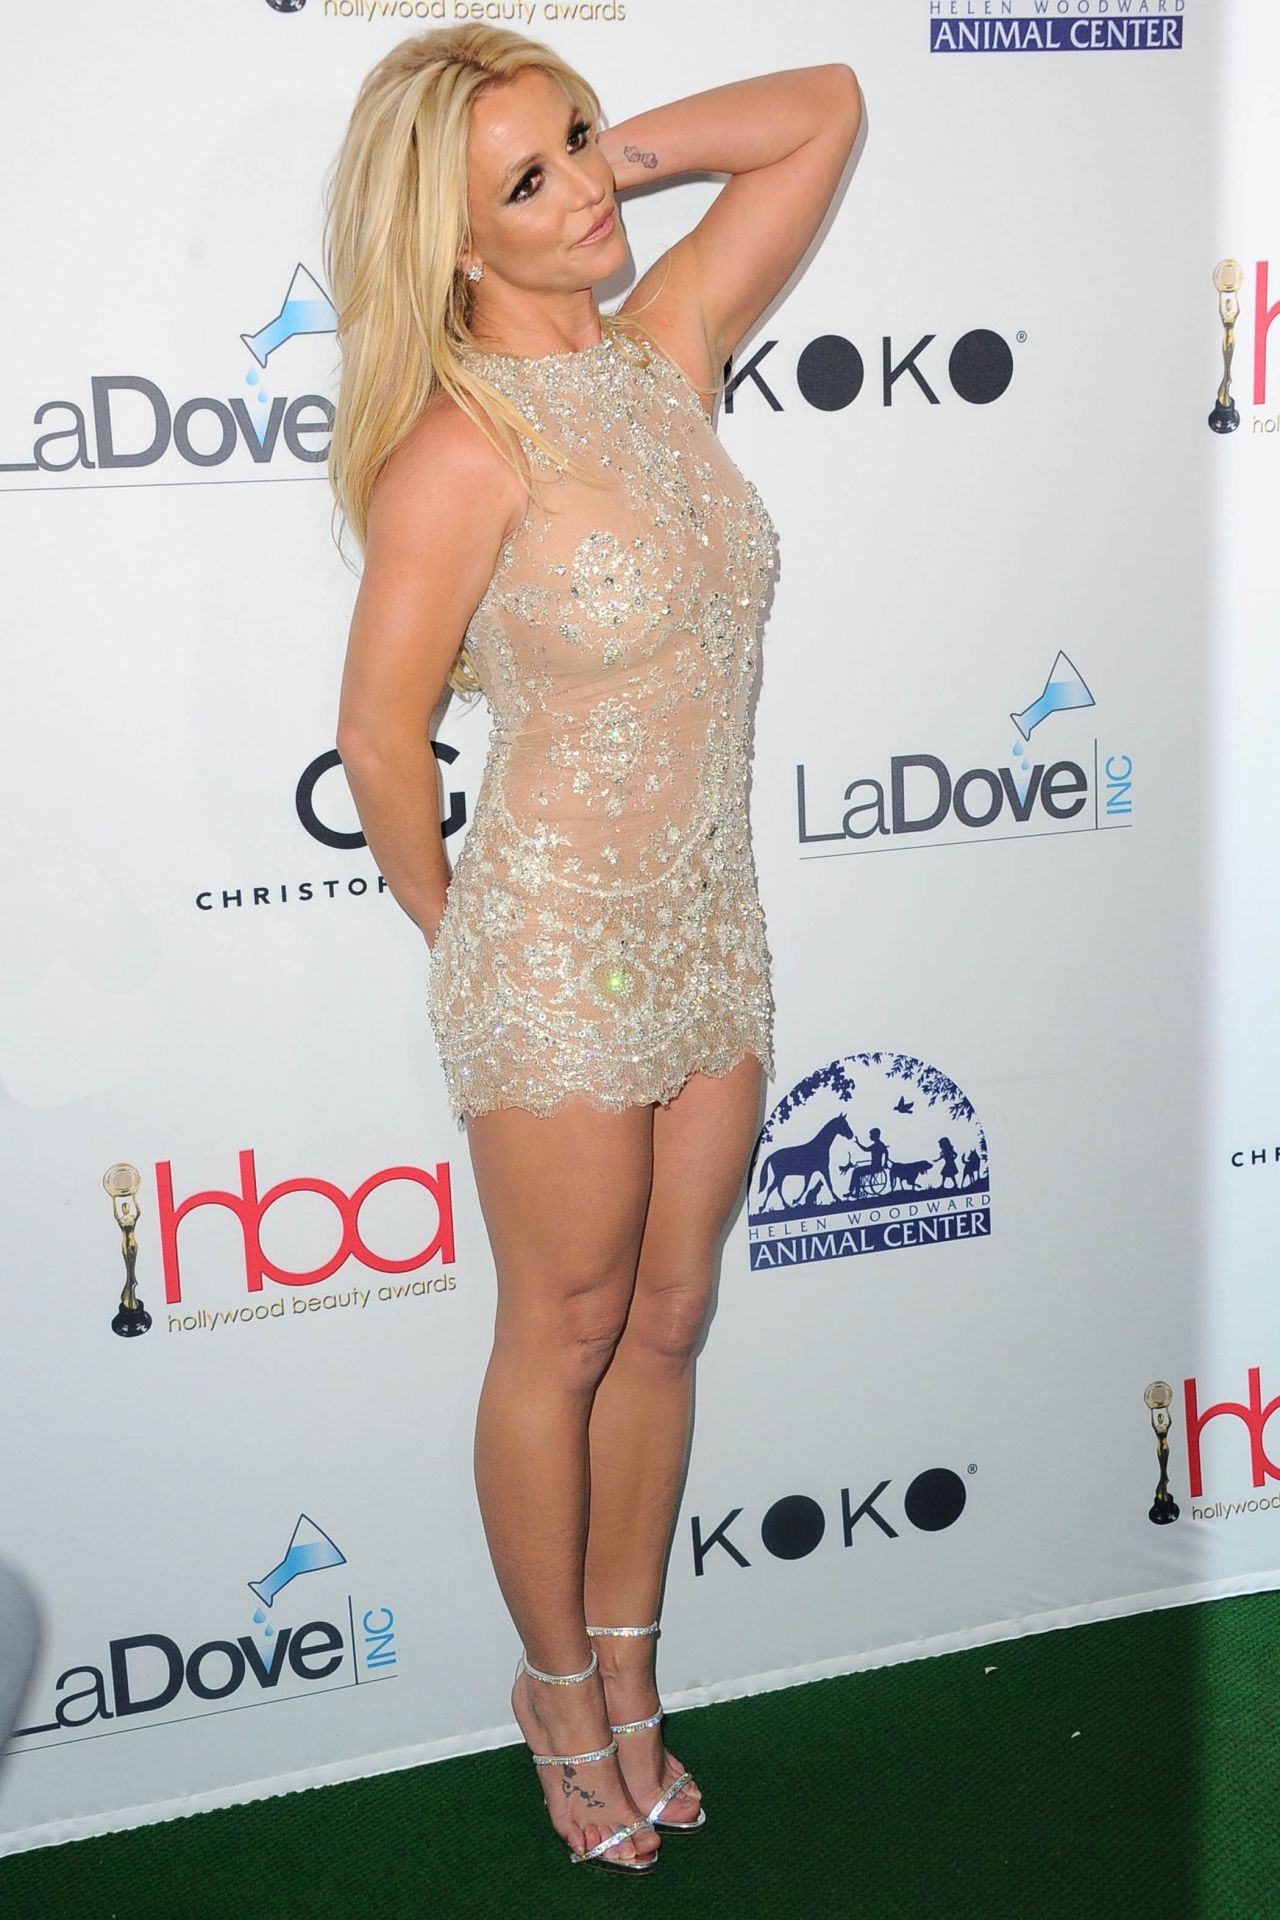 britney-spears-2018-hollywood-beauty-awards-in-la-1.jpg